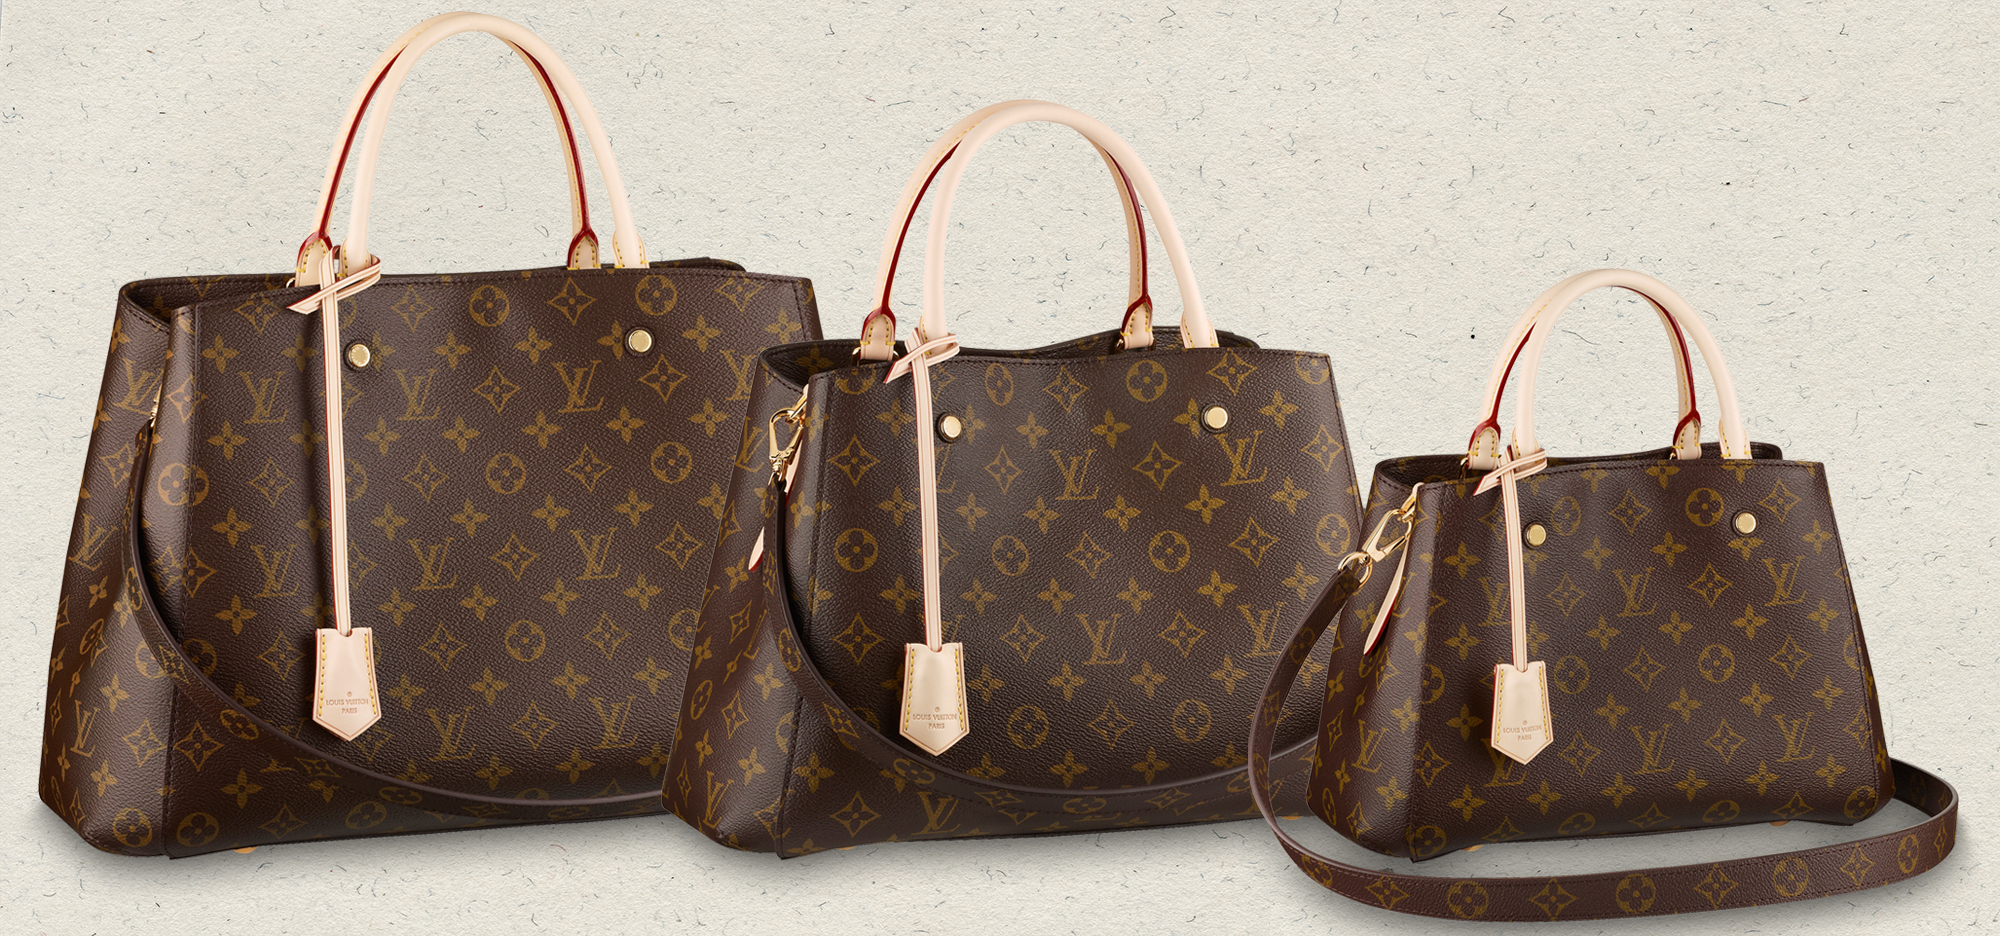 cheap designer replica louis vuitton monogram handbags online store. Black Bedroom Furniture Sets. Home Design Ideas